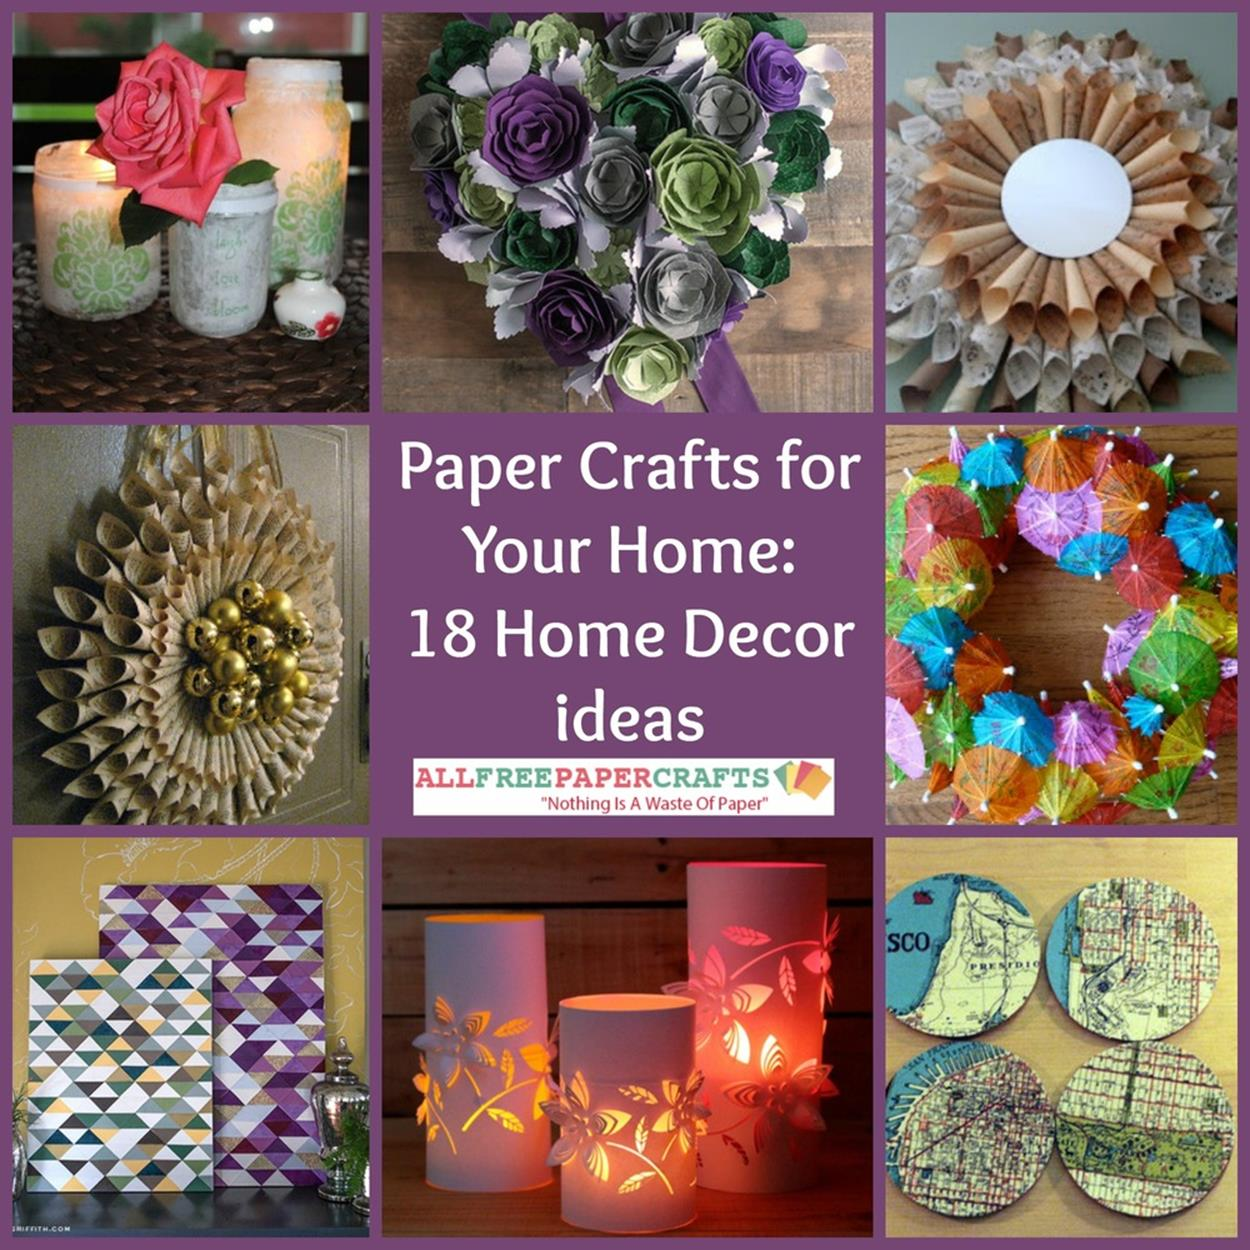 Creative Homemade Crafts for House Decorations Ideas 17